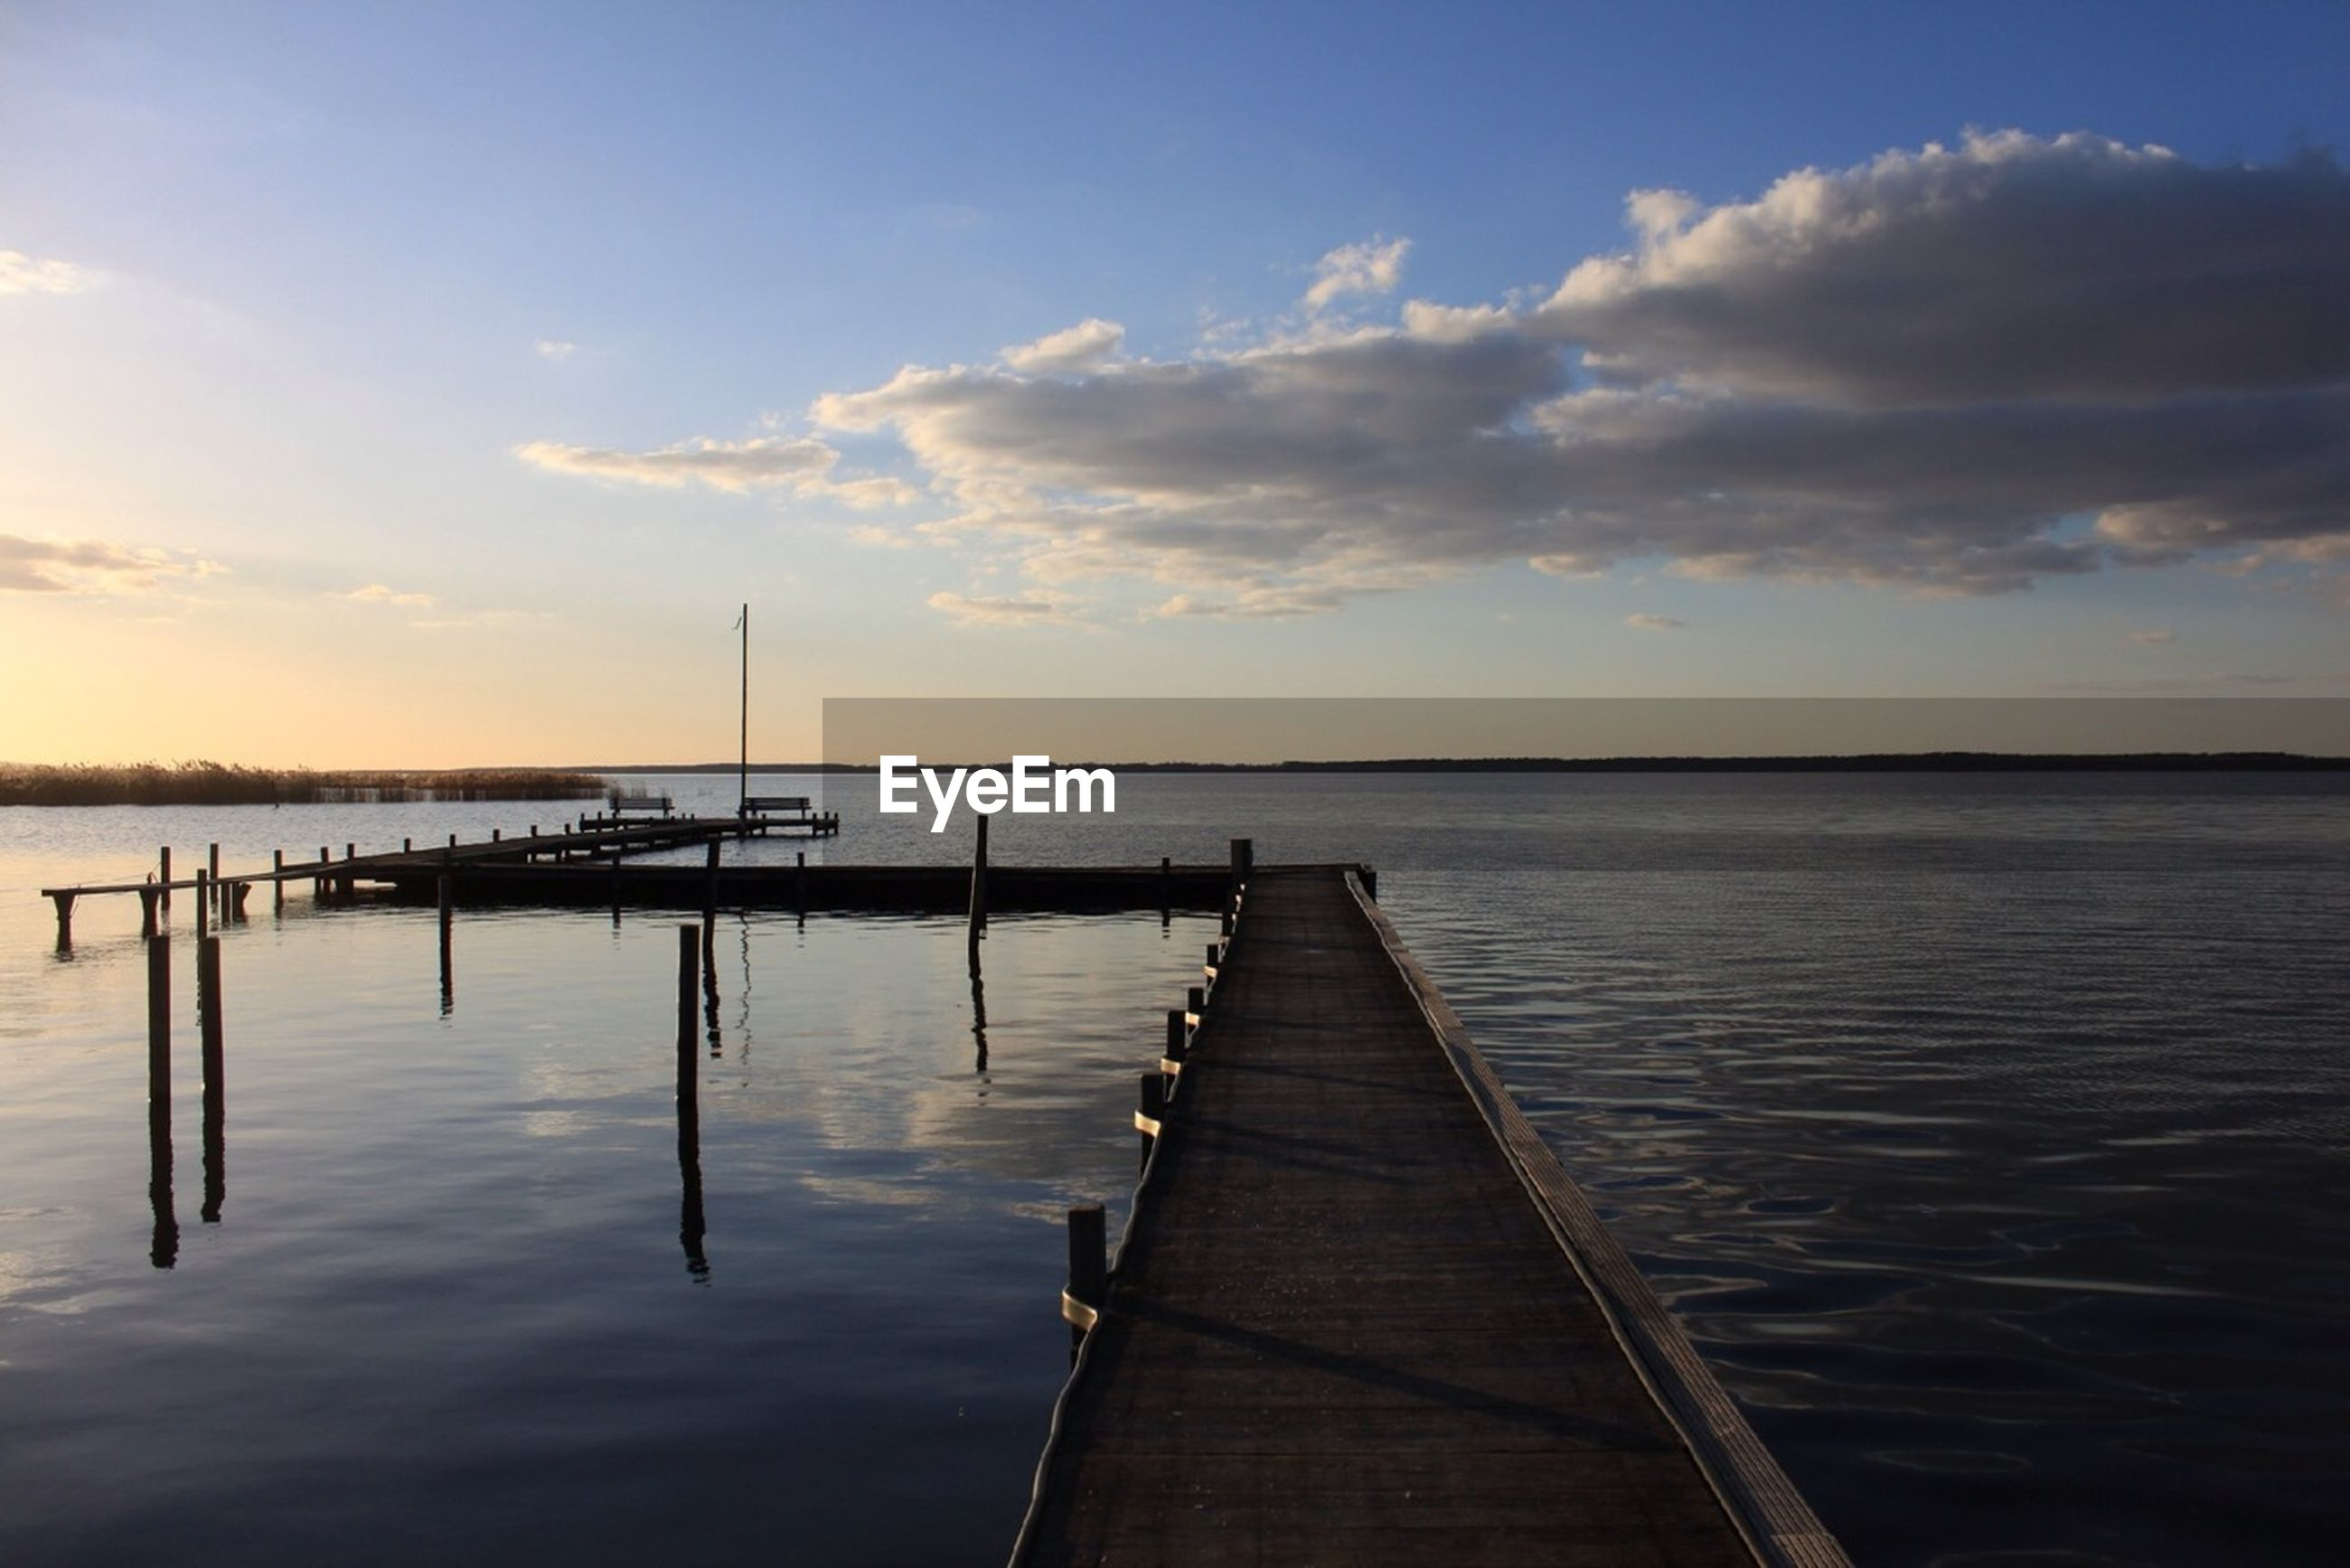 water, sunset, sky, pier, sea, tranquil scene, tranquility, scenics, beauty in nature, cloud - sky, jetty, nature, horizon over water, cloud, idyllic, reflection, wood - material, the way forward, transportation, outdoors